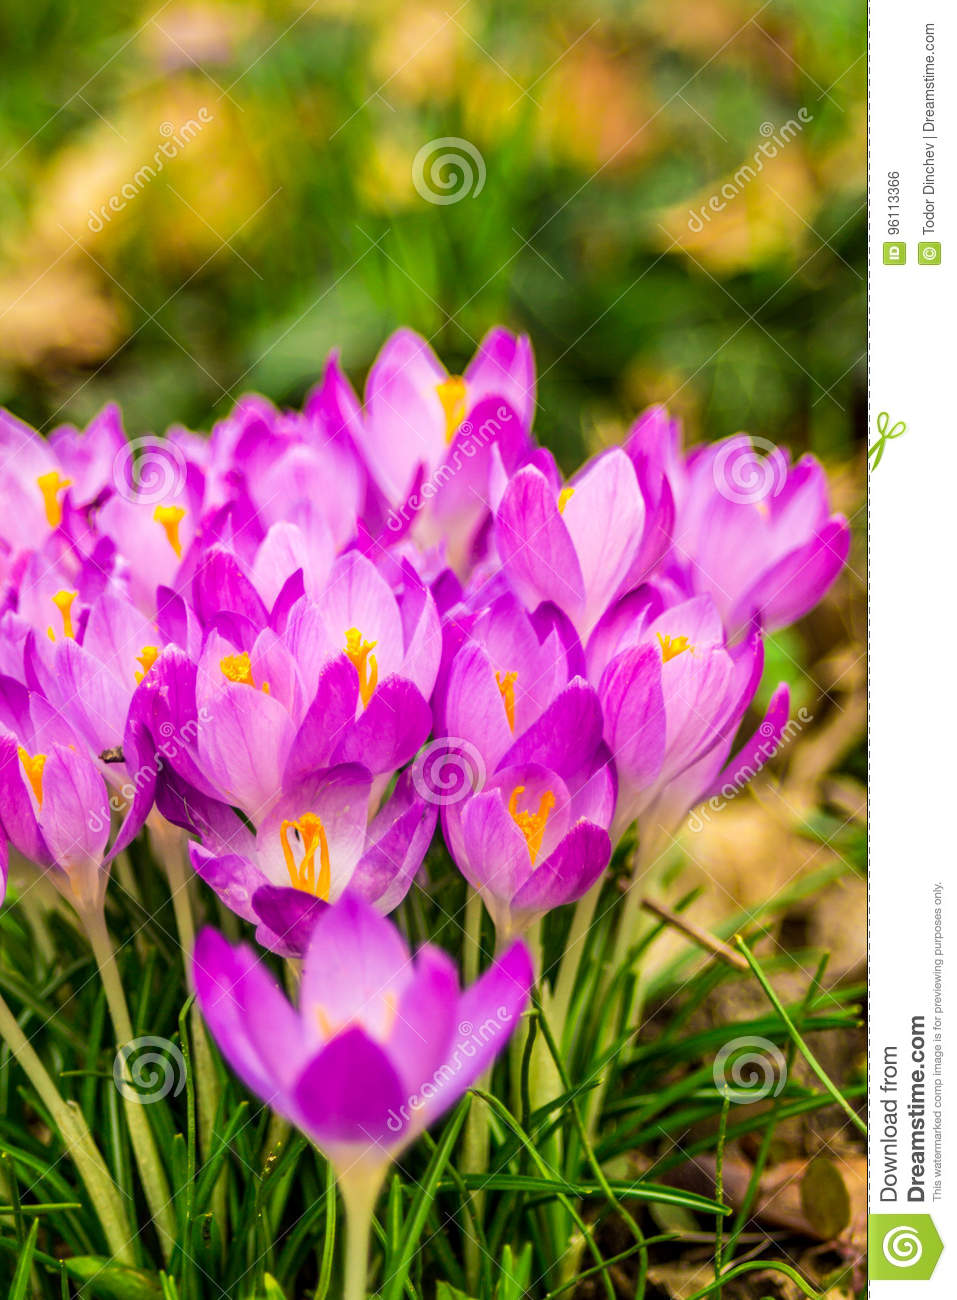 Crocus Plural Crocuses Or Croci Stock Photo Image Of Grass